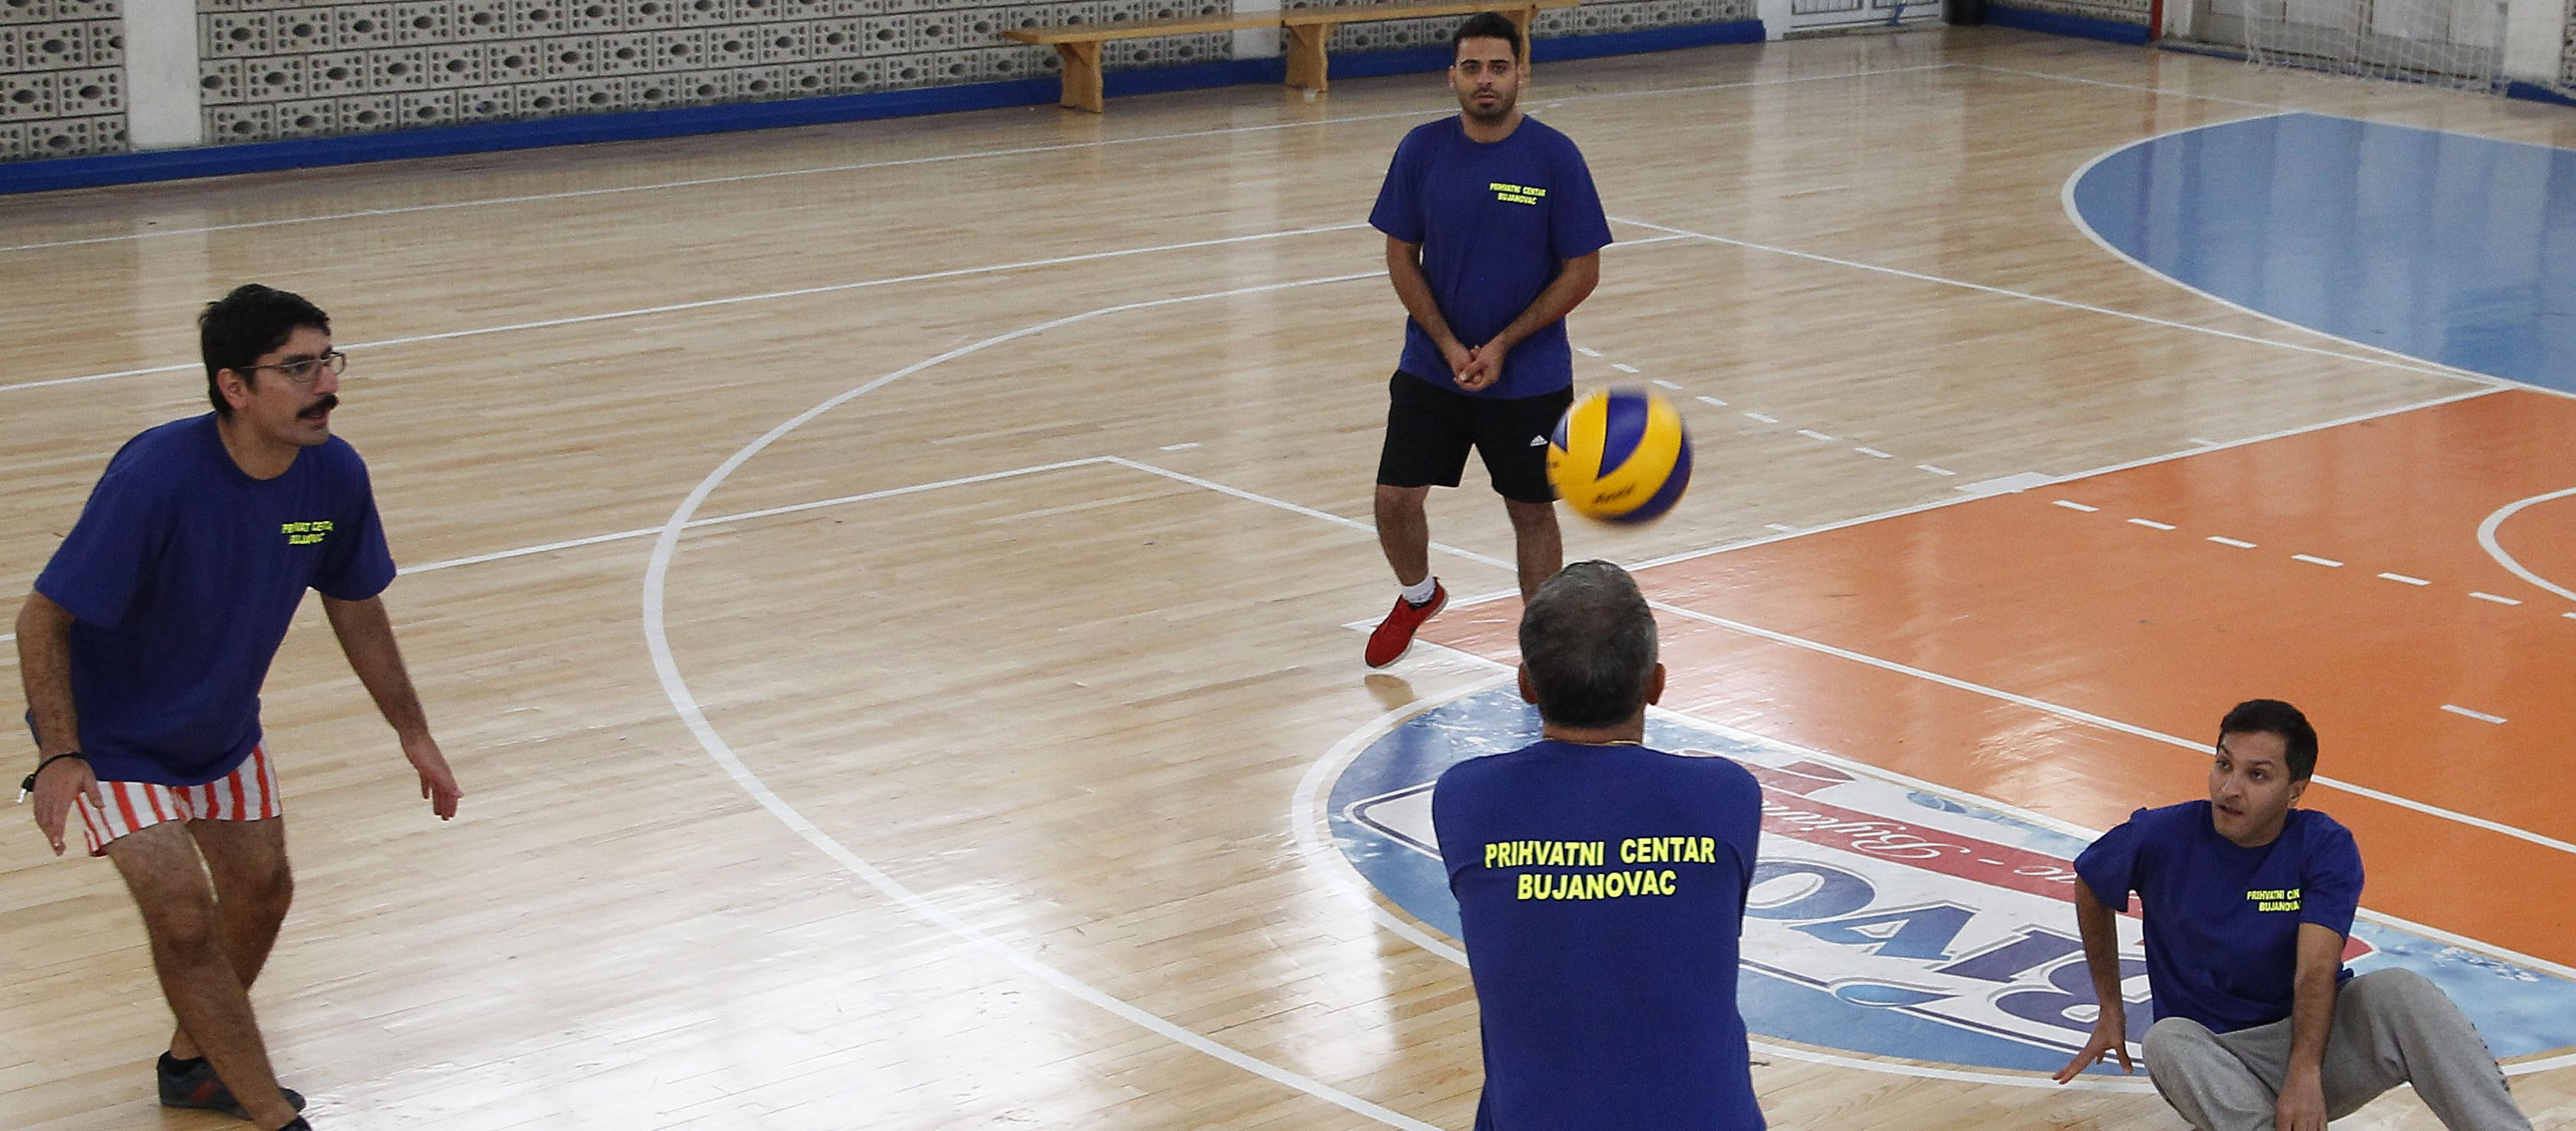 Migrants and volleyball players from Bujanovac in a friendly tournament